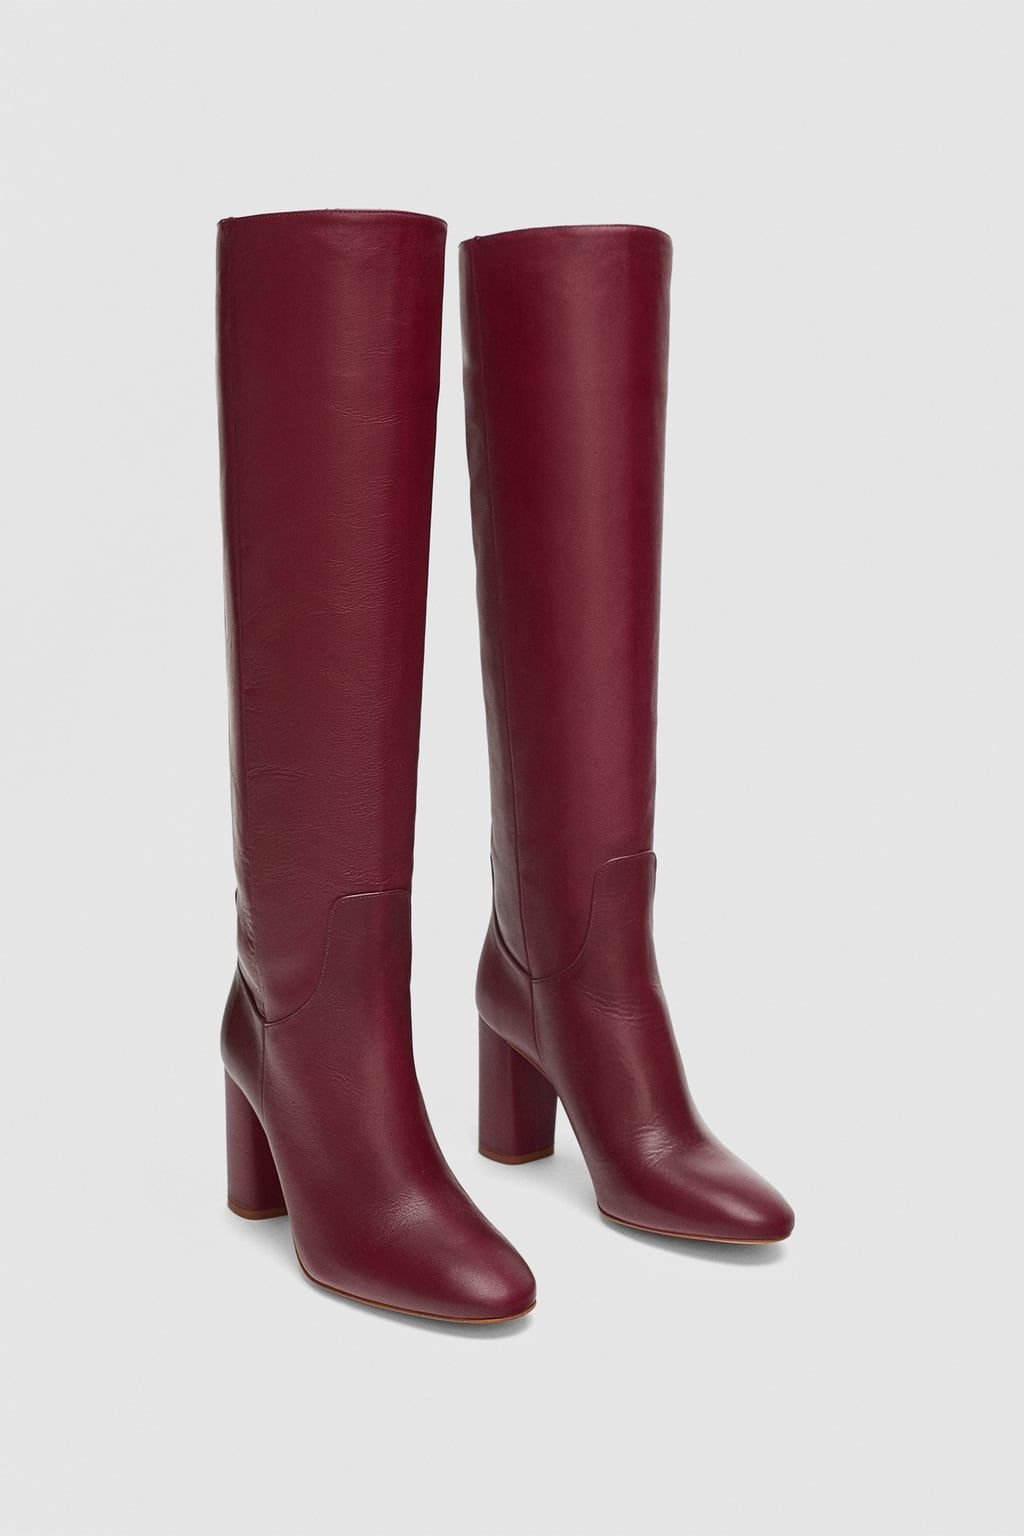 ea5ca63a574 BOTA TACÓN PIEL Red Leather Boots